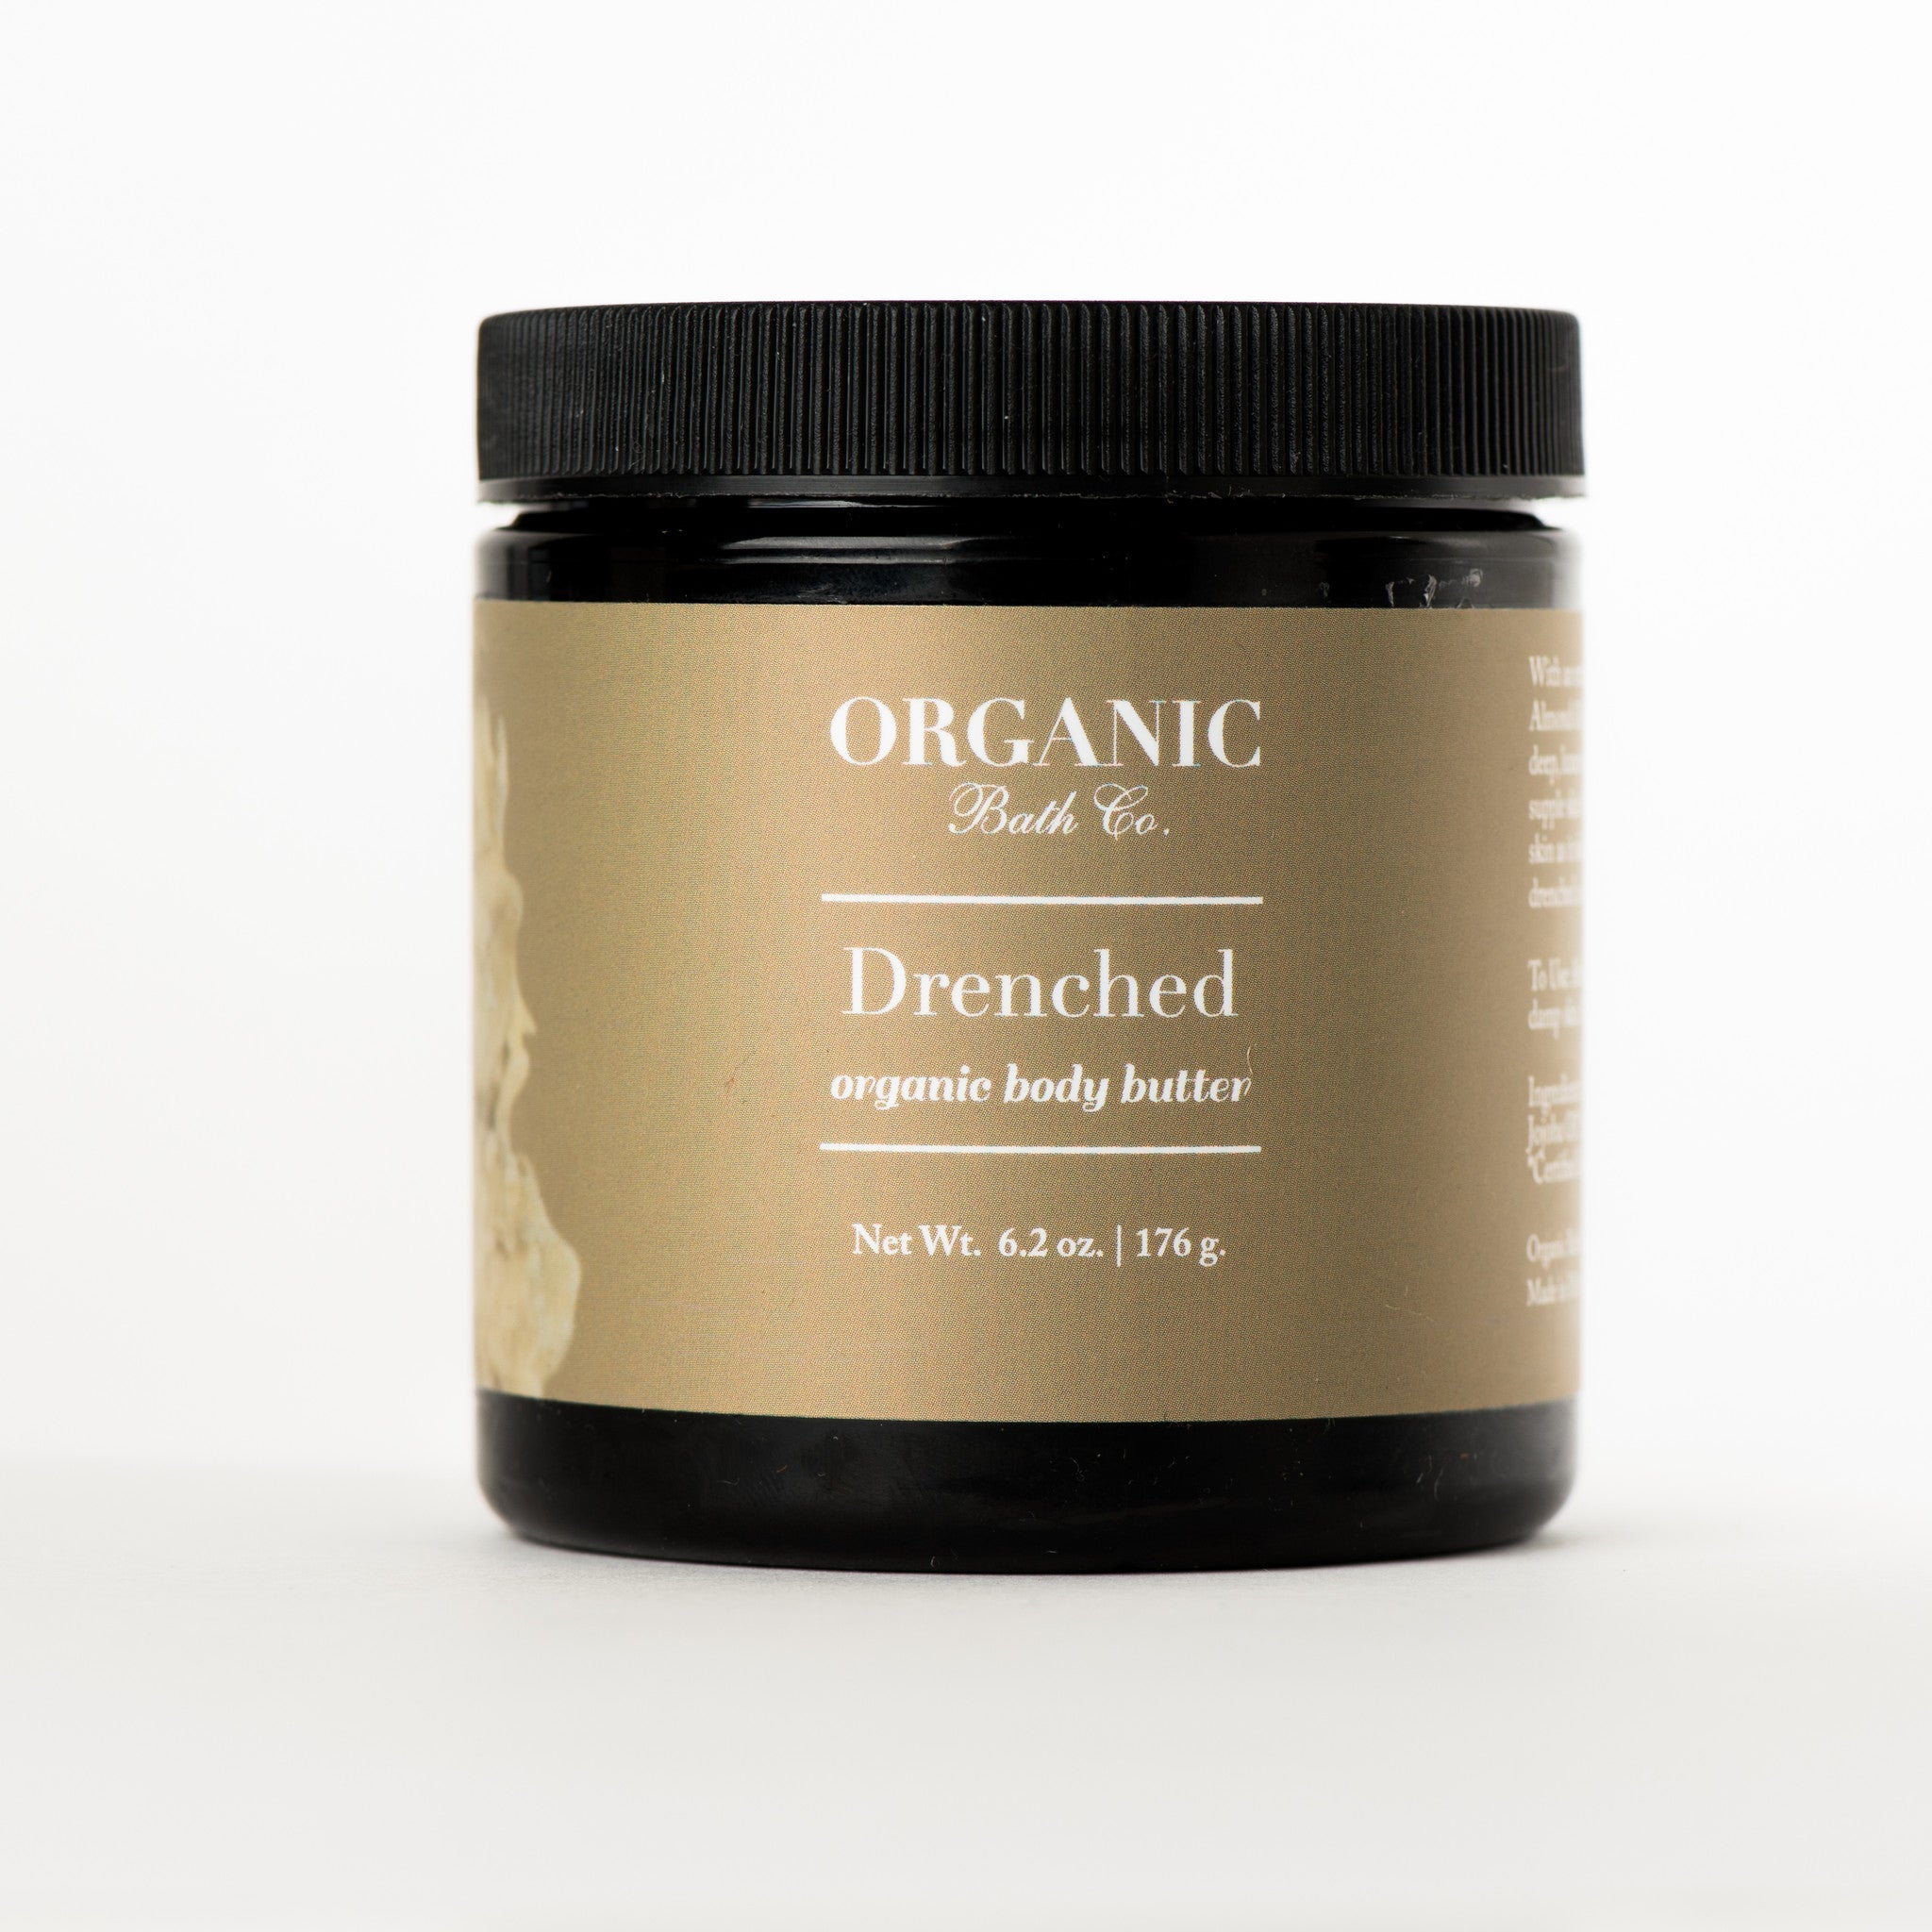 drenched body butter, unscented body lotion